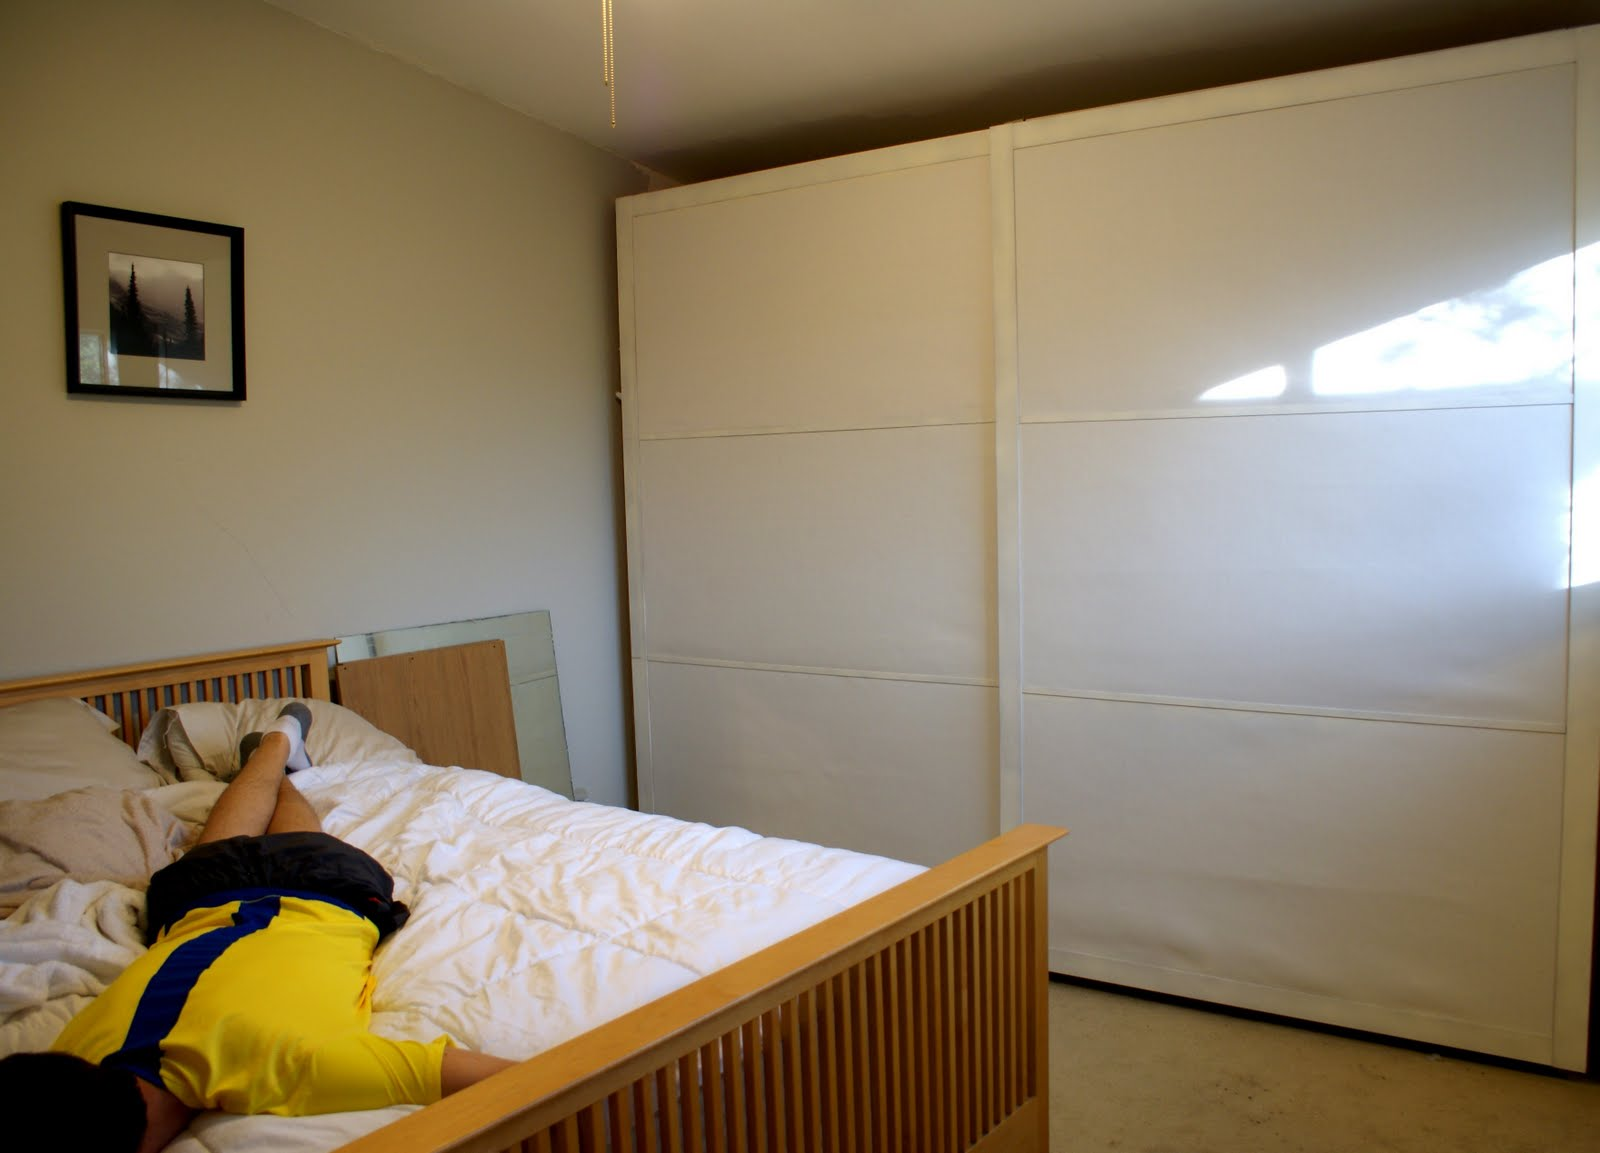 fixing the pax sliding door  ikea hackers  ikea hackers, Bedroom decor